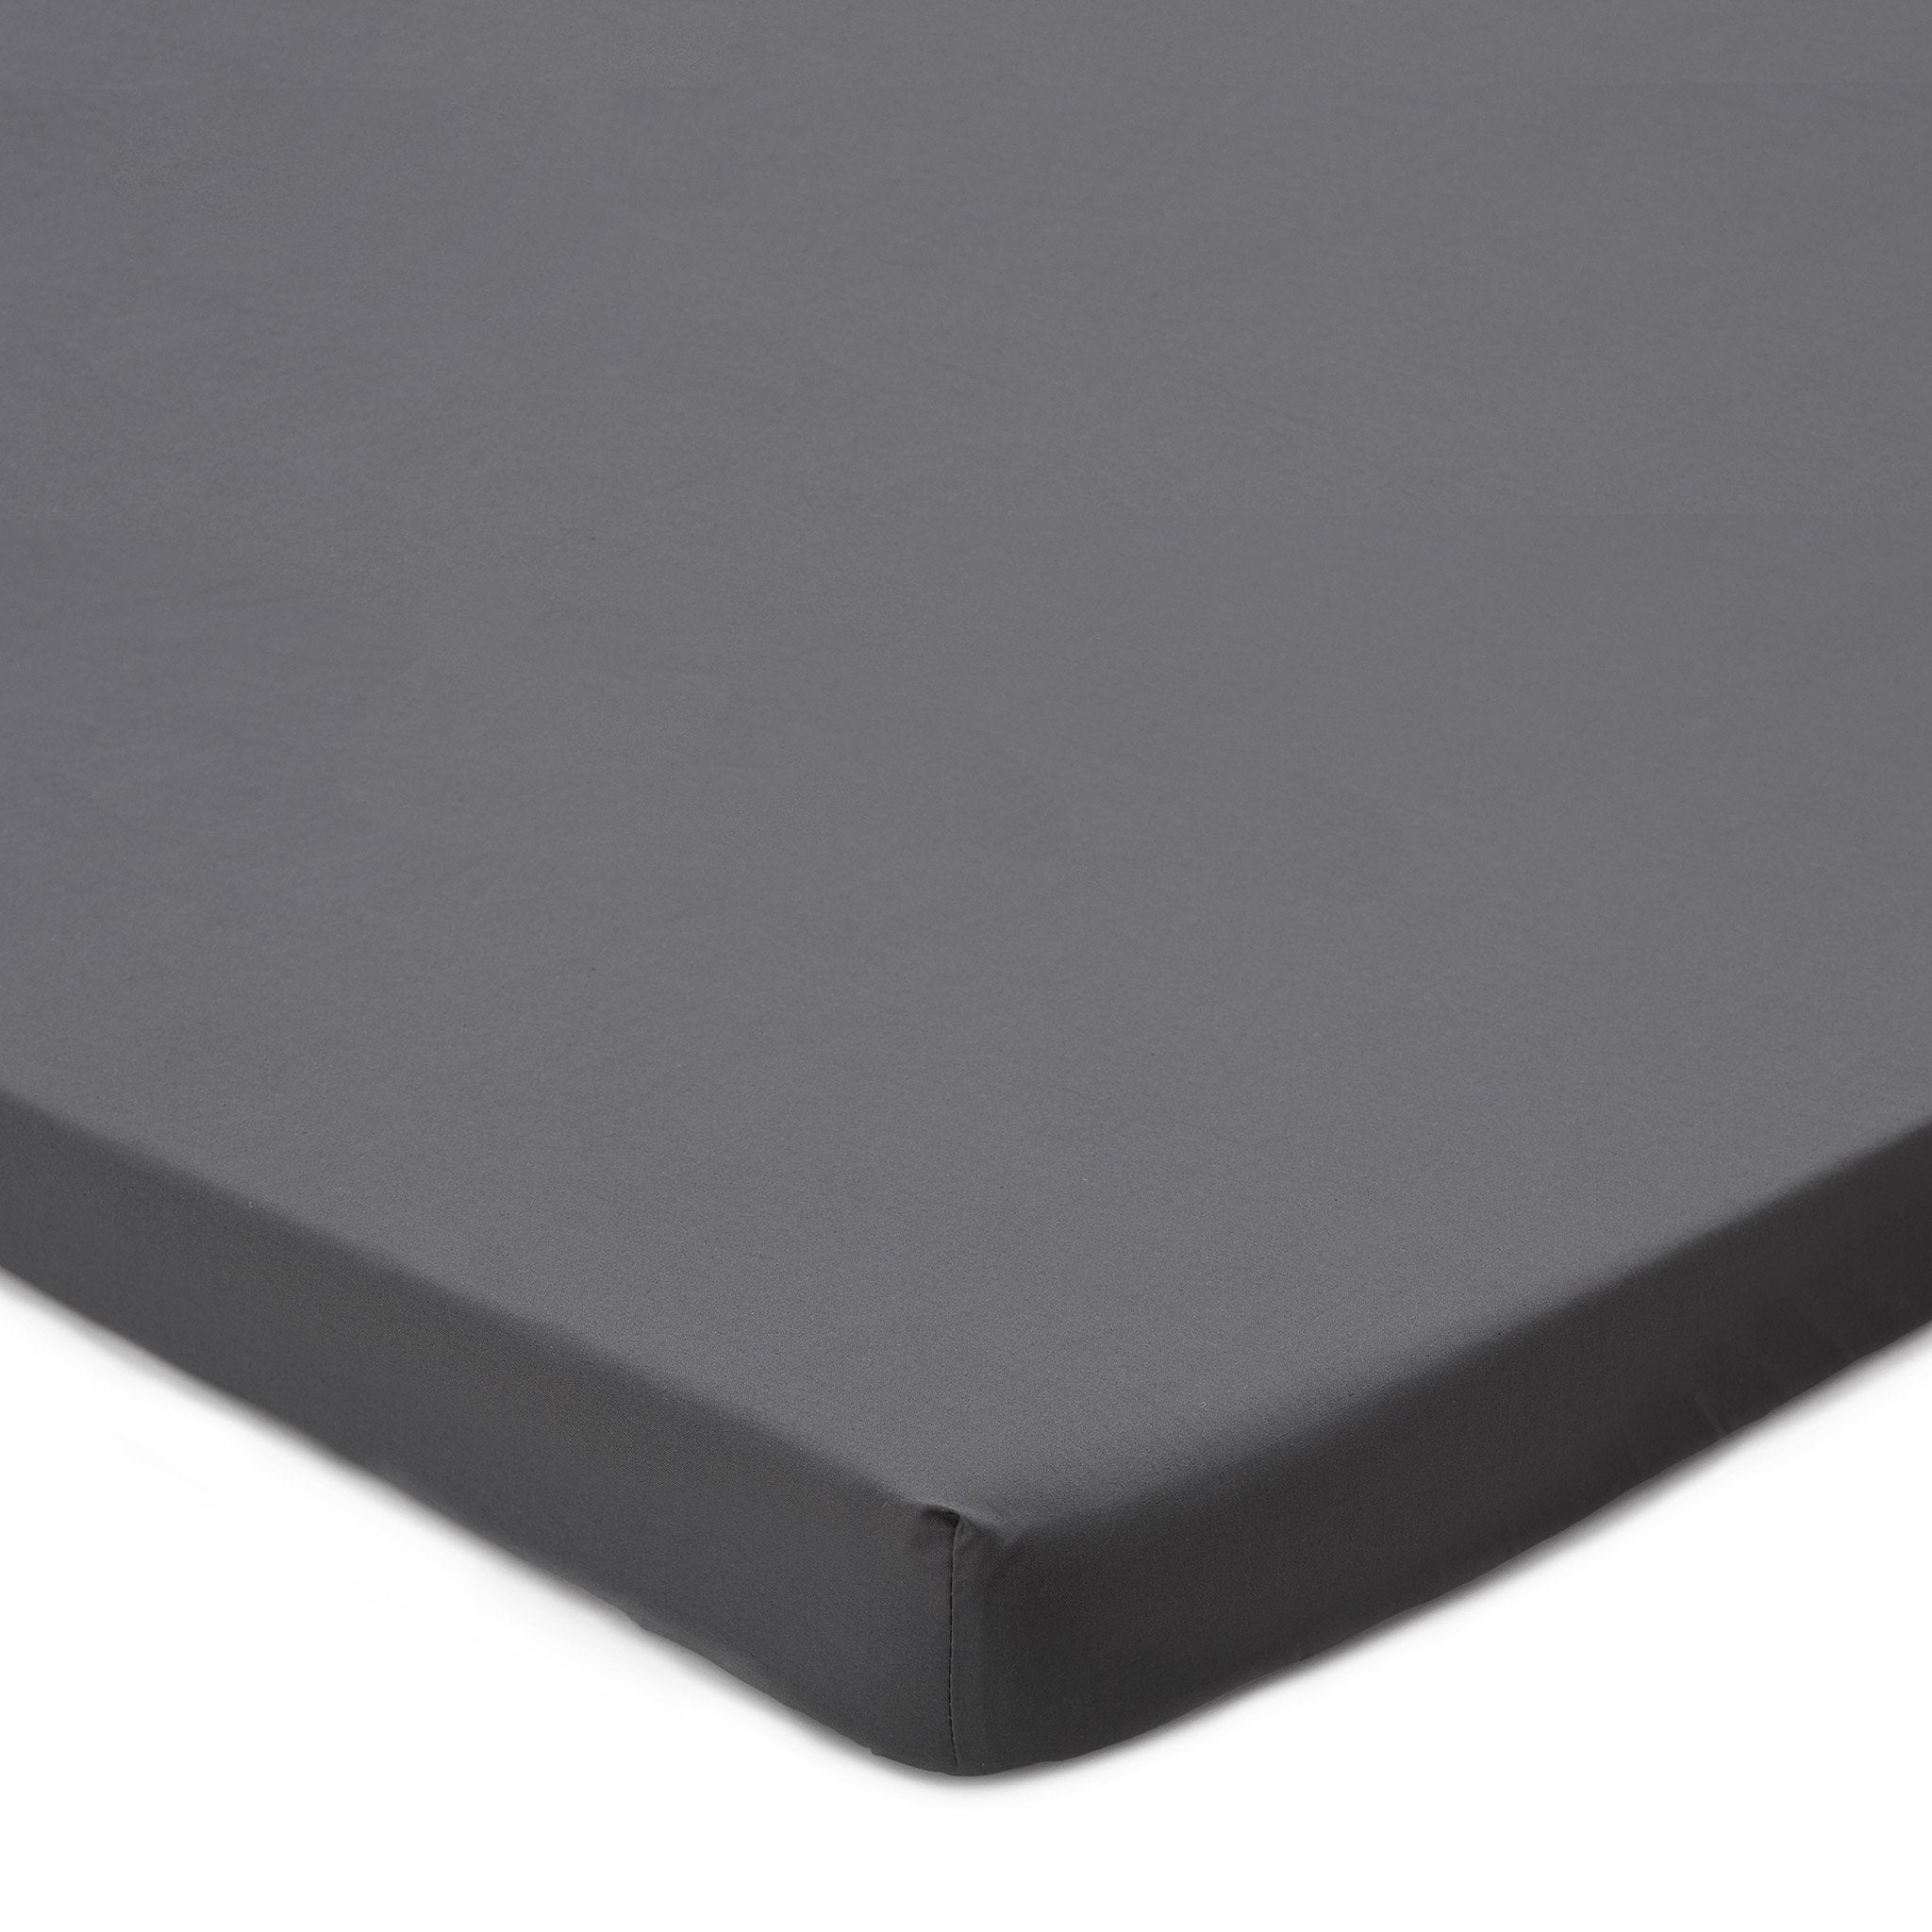 Perpignan Topper Fitted Sheet grey, 100% cotton